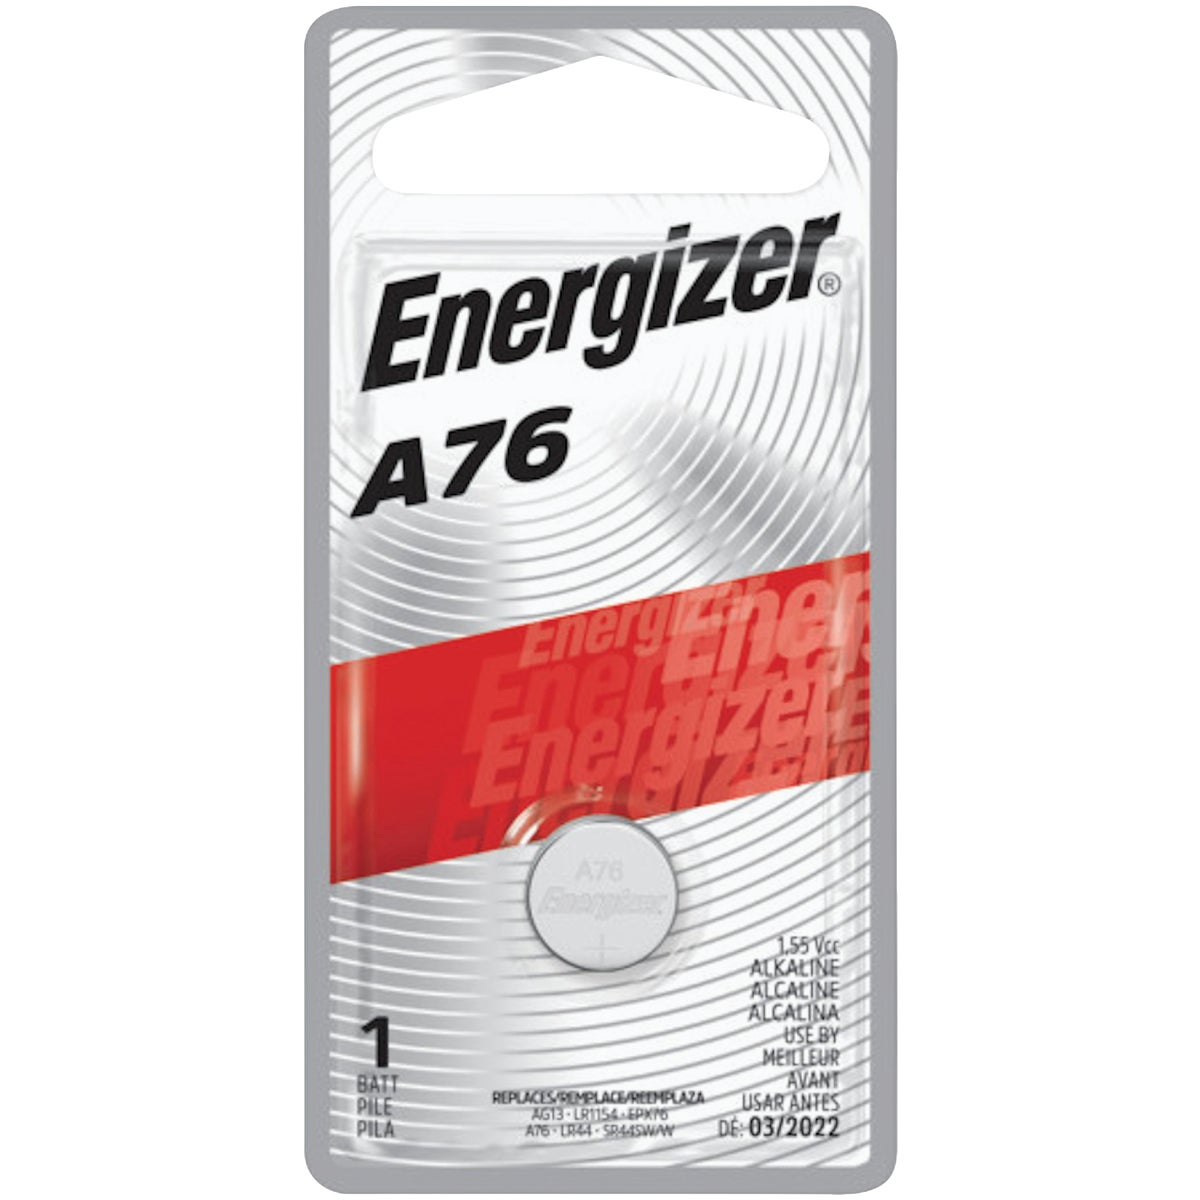 1.5V WATCH/ELEC BATTERY - A76BPZ by Energizer